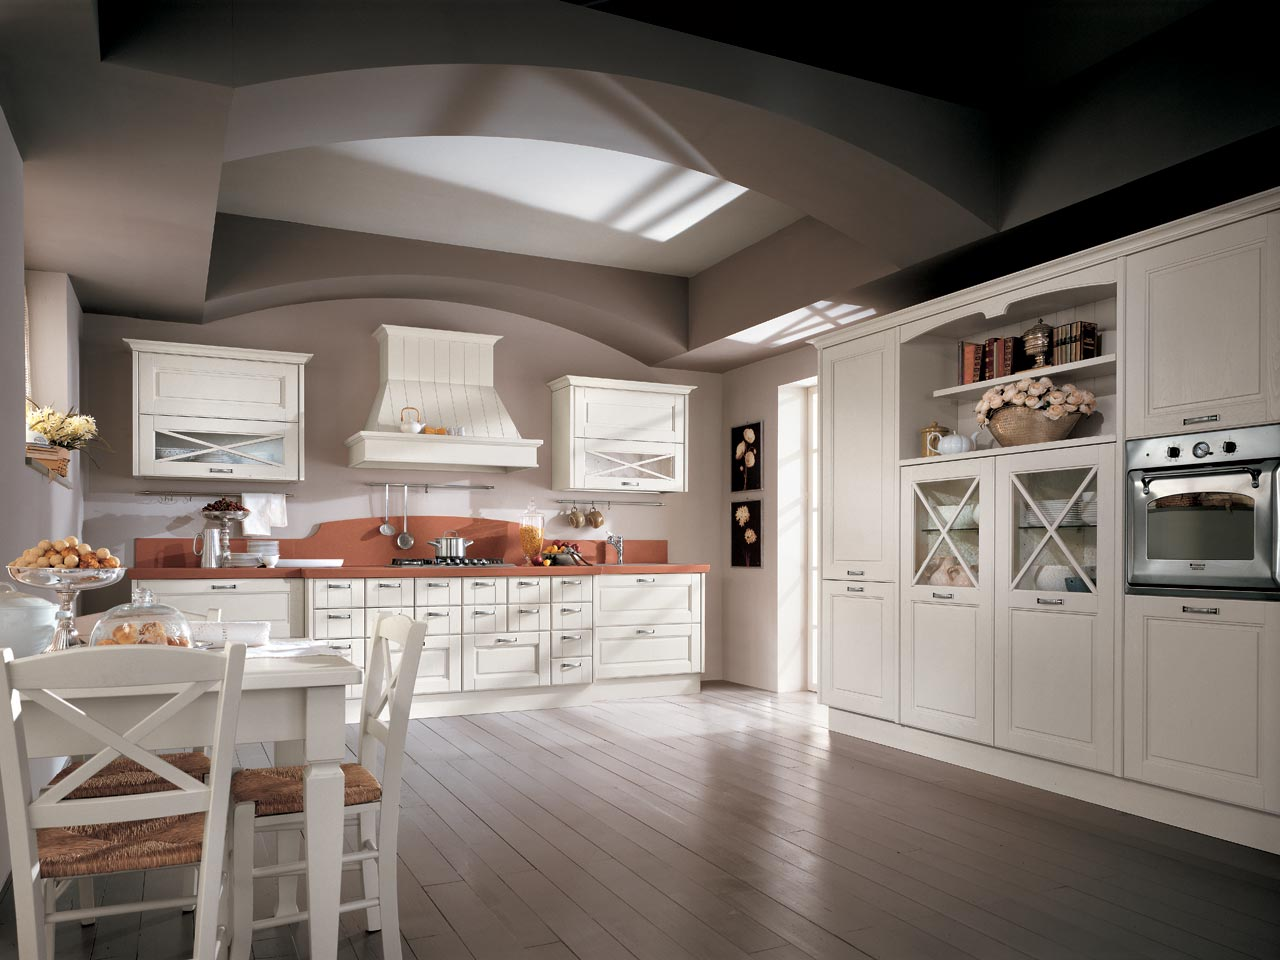 AGNESE Kitchen by Cucine Lube